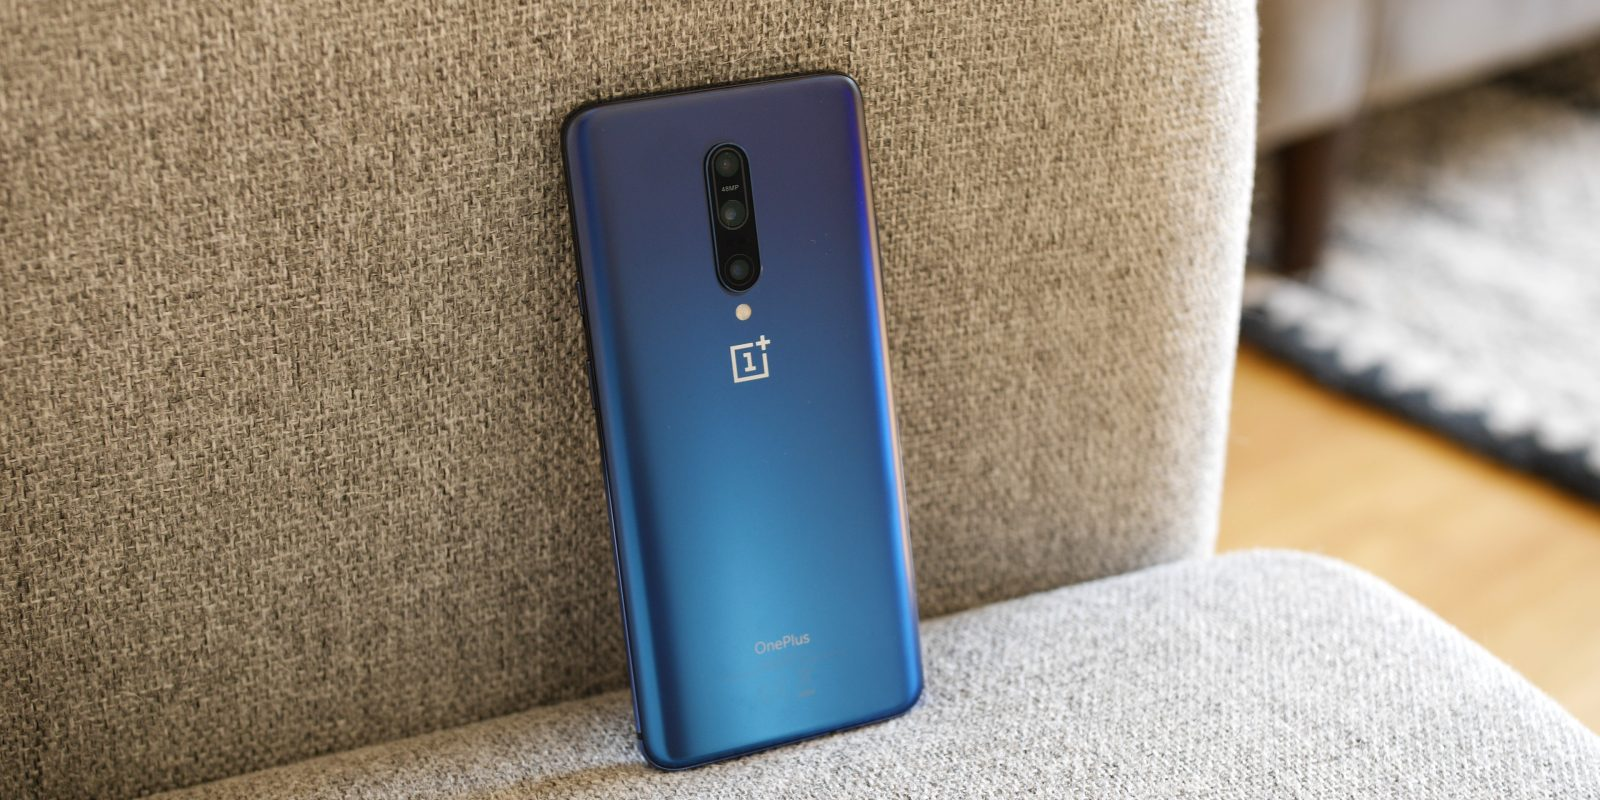 OnePlus 7 Pro hands-on: Flat out flagship [Video] - 9to5Google